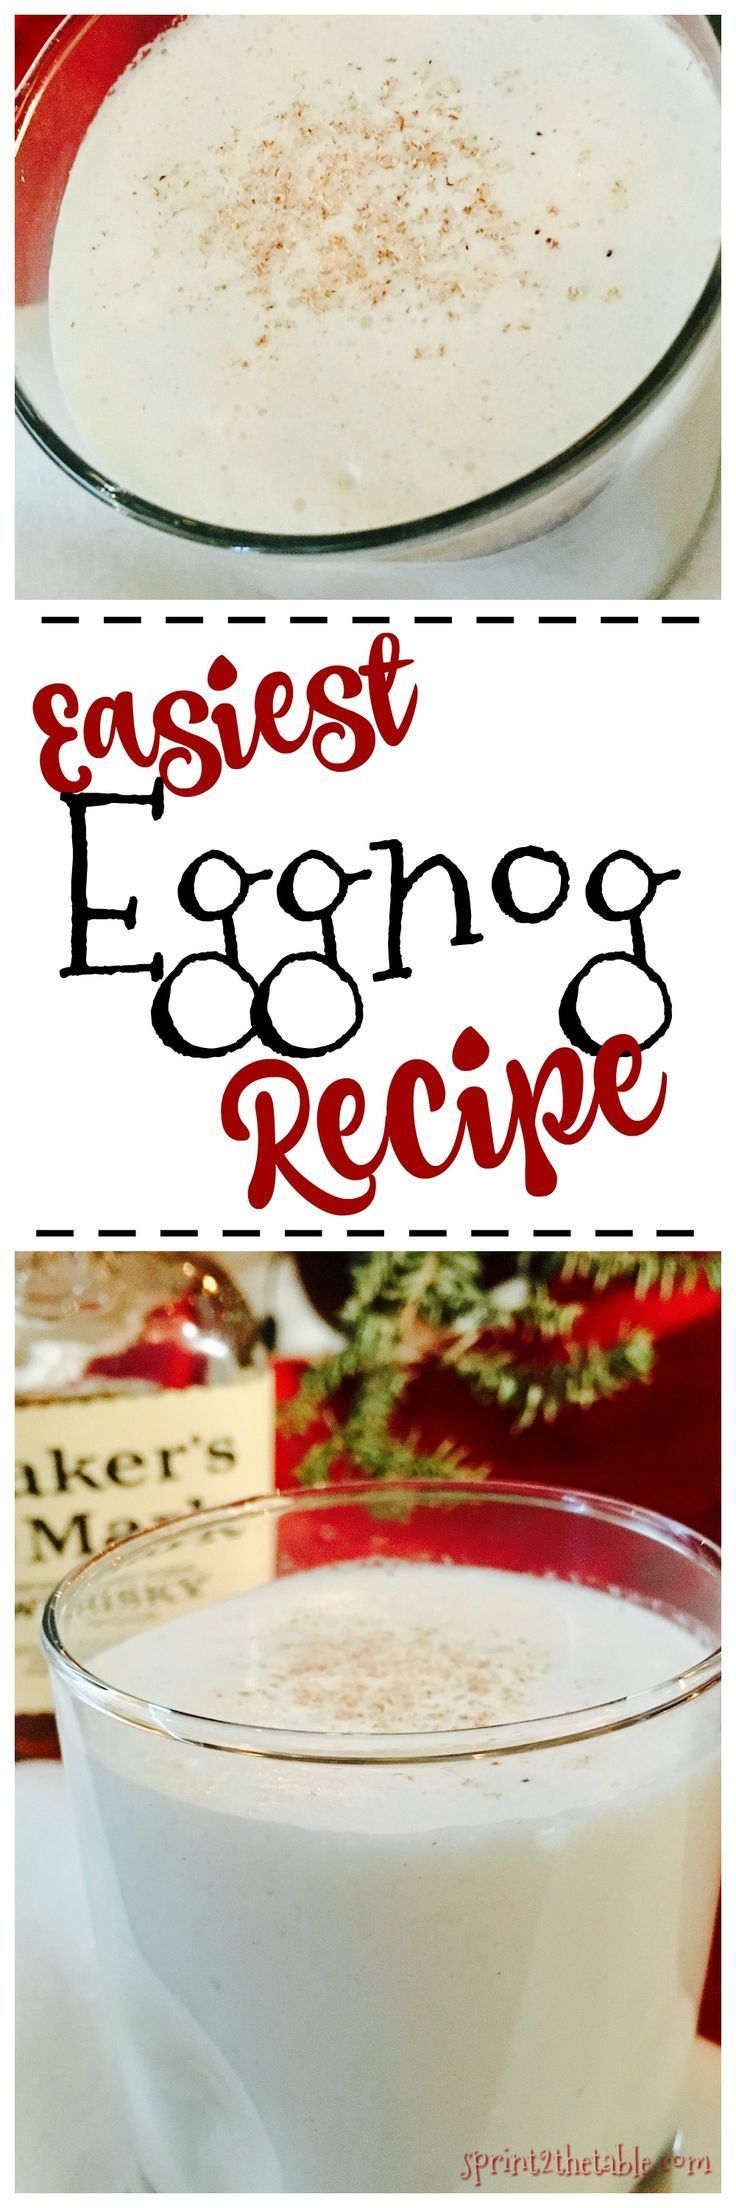 Super easy eggnog recipe - this version is ready to drink in less than 10!